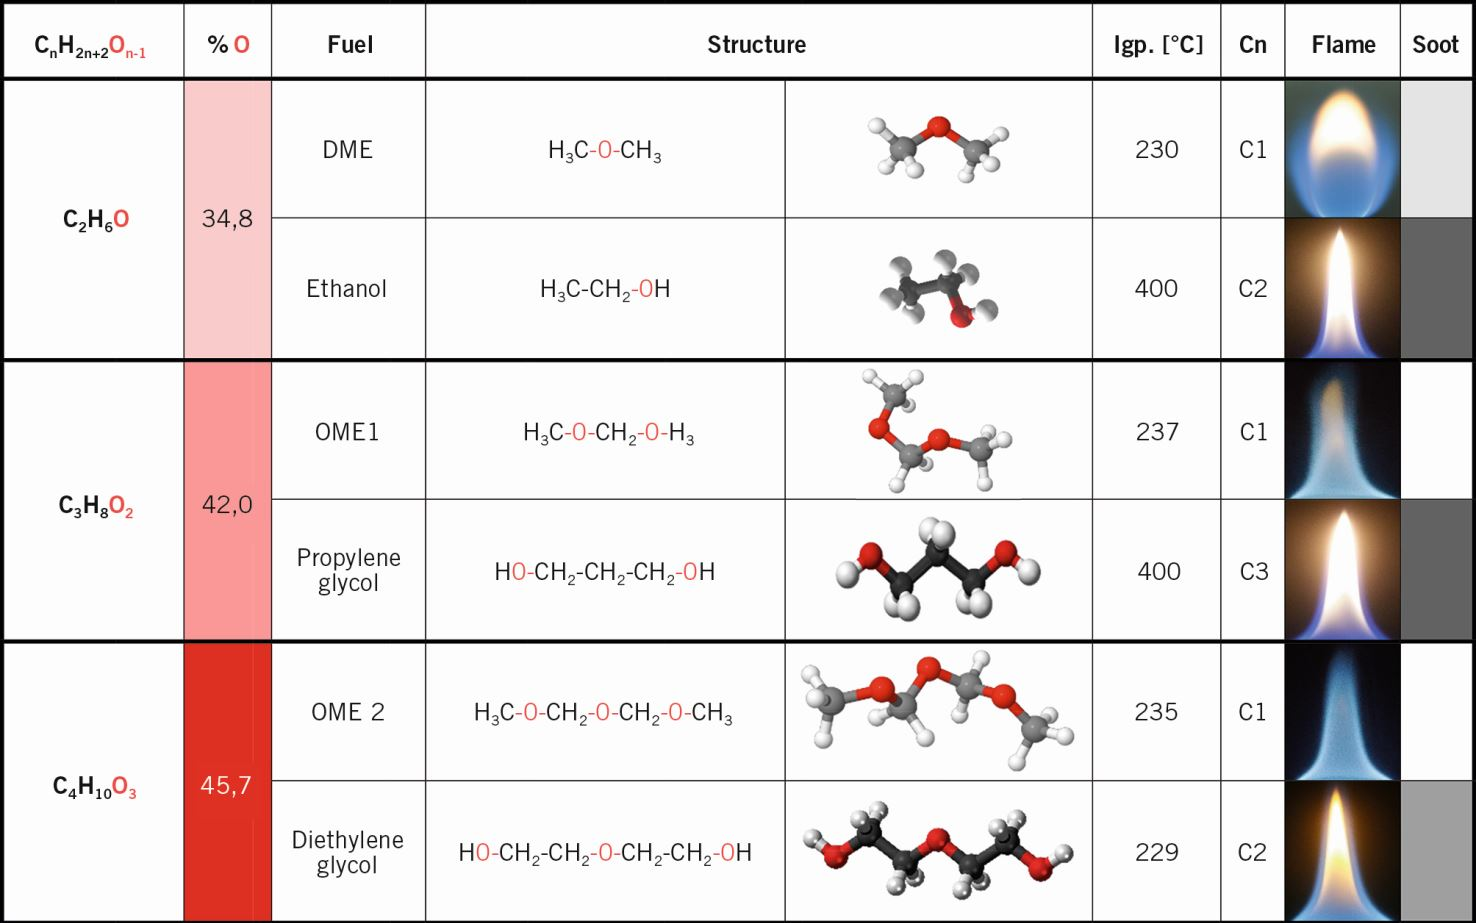 Oxymethylene Ether as Potentially Carbon-neutral Fuel for